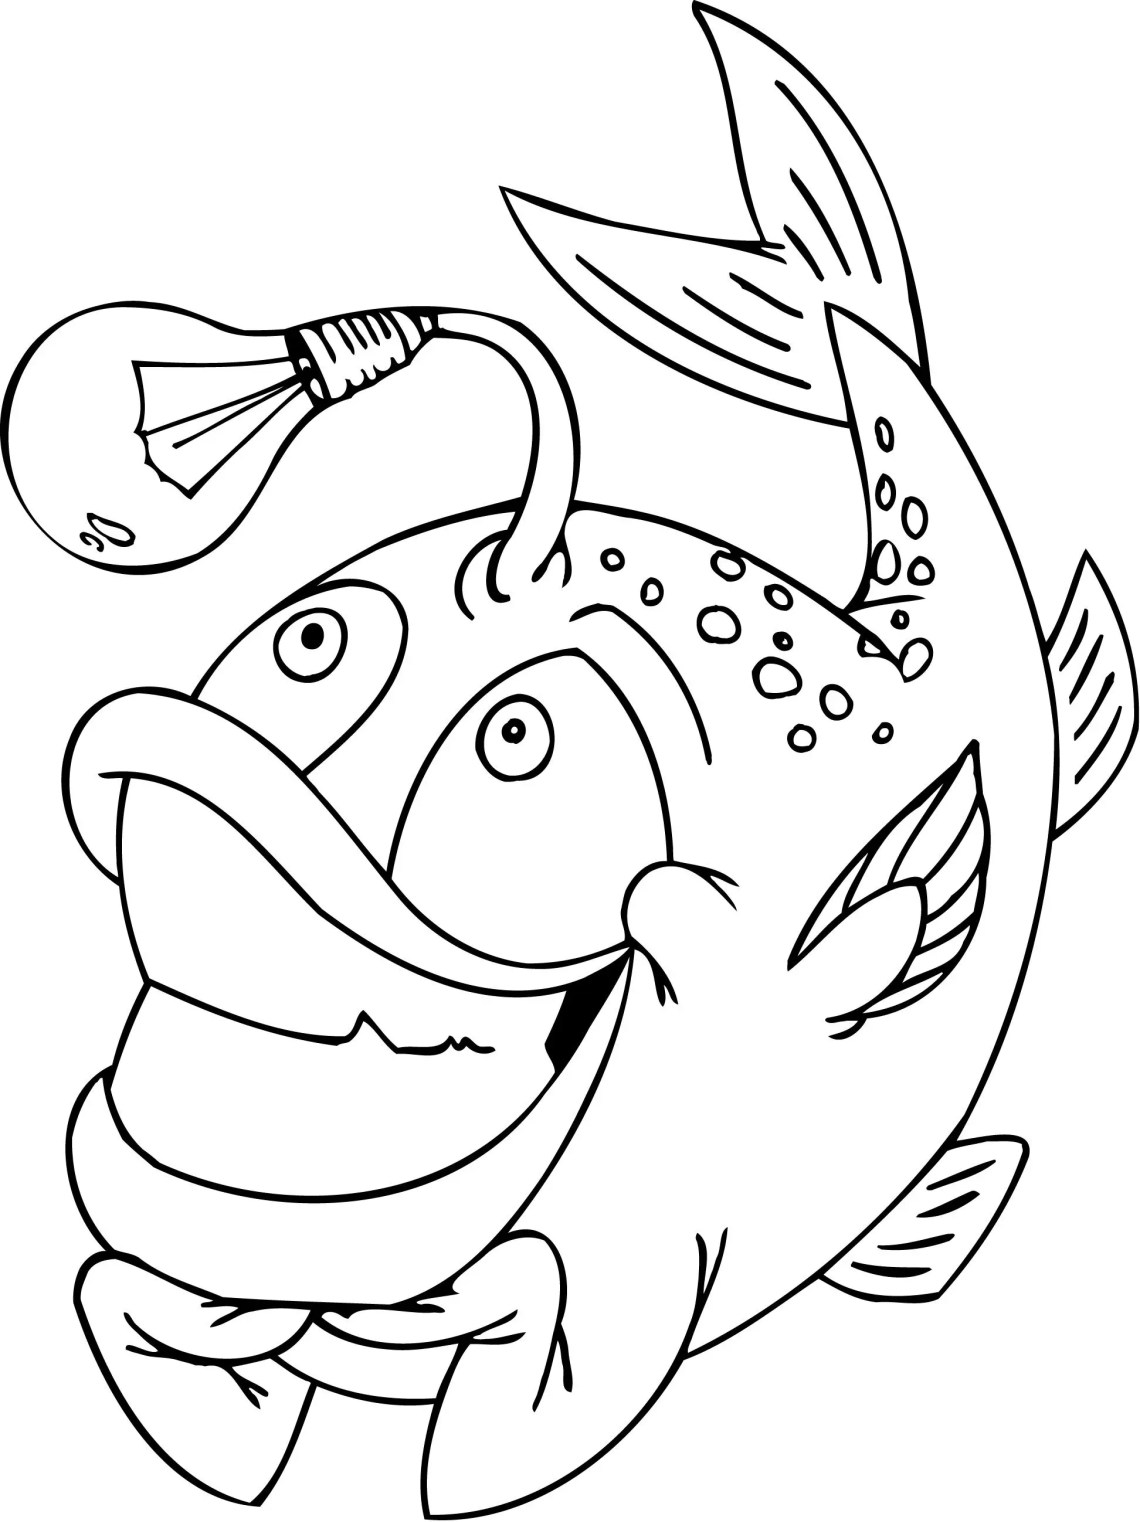 Free Printable Funny Coloring Pages For Kids | free online coloring pages for adults funny